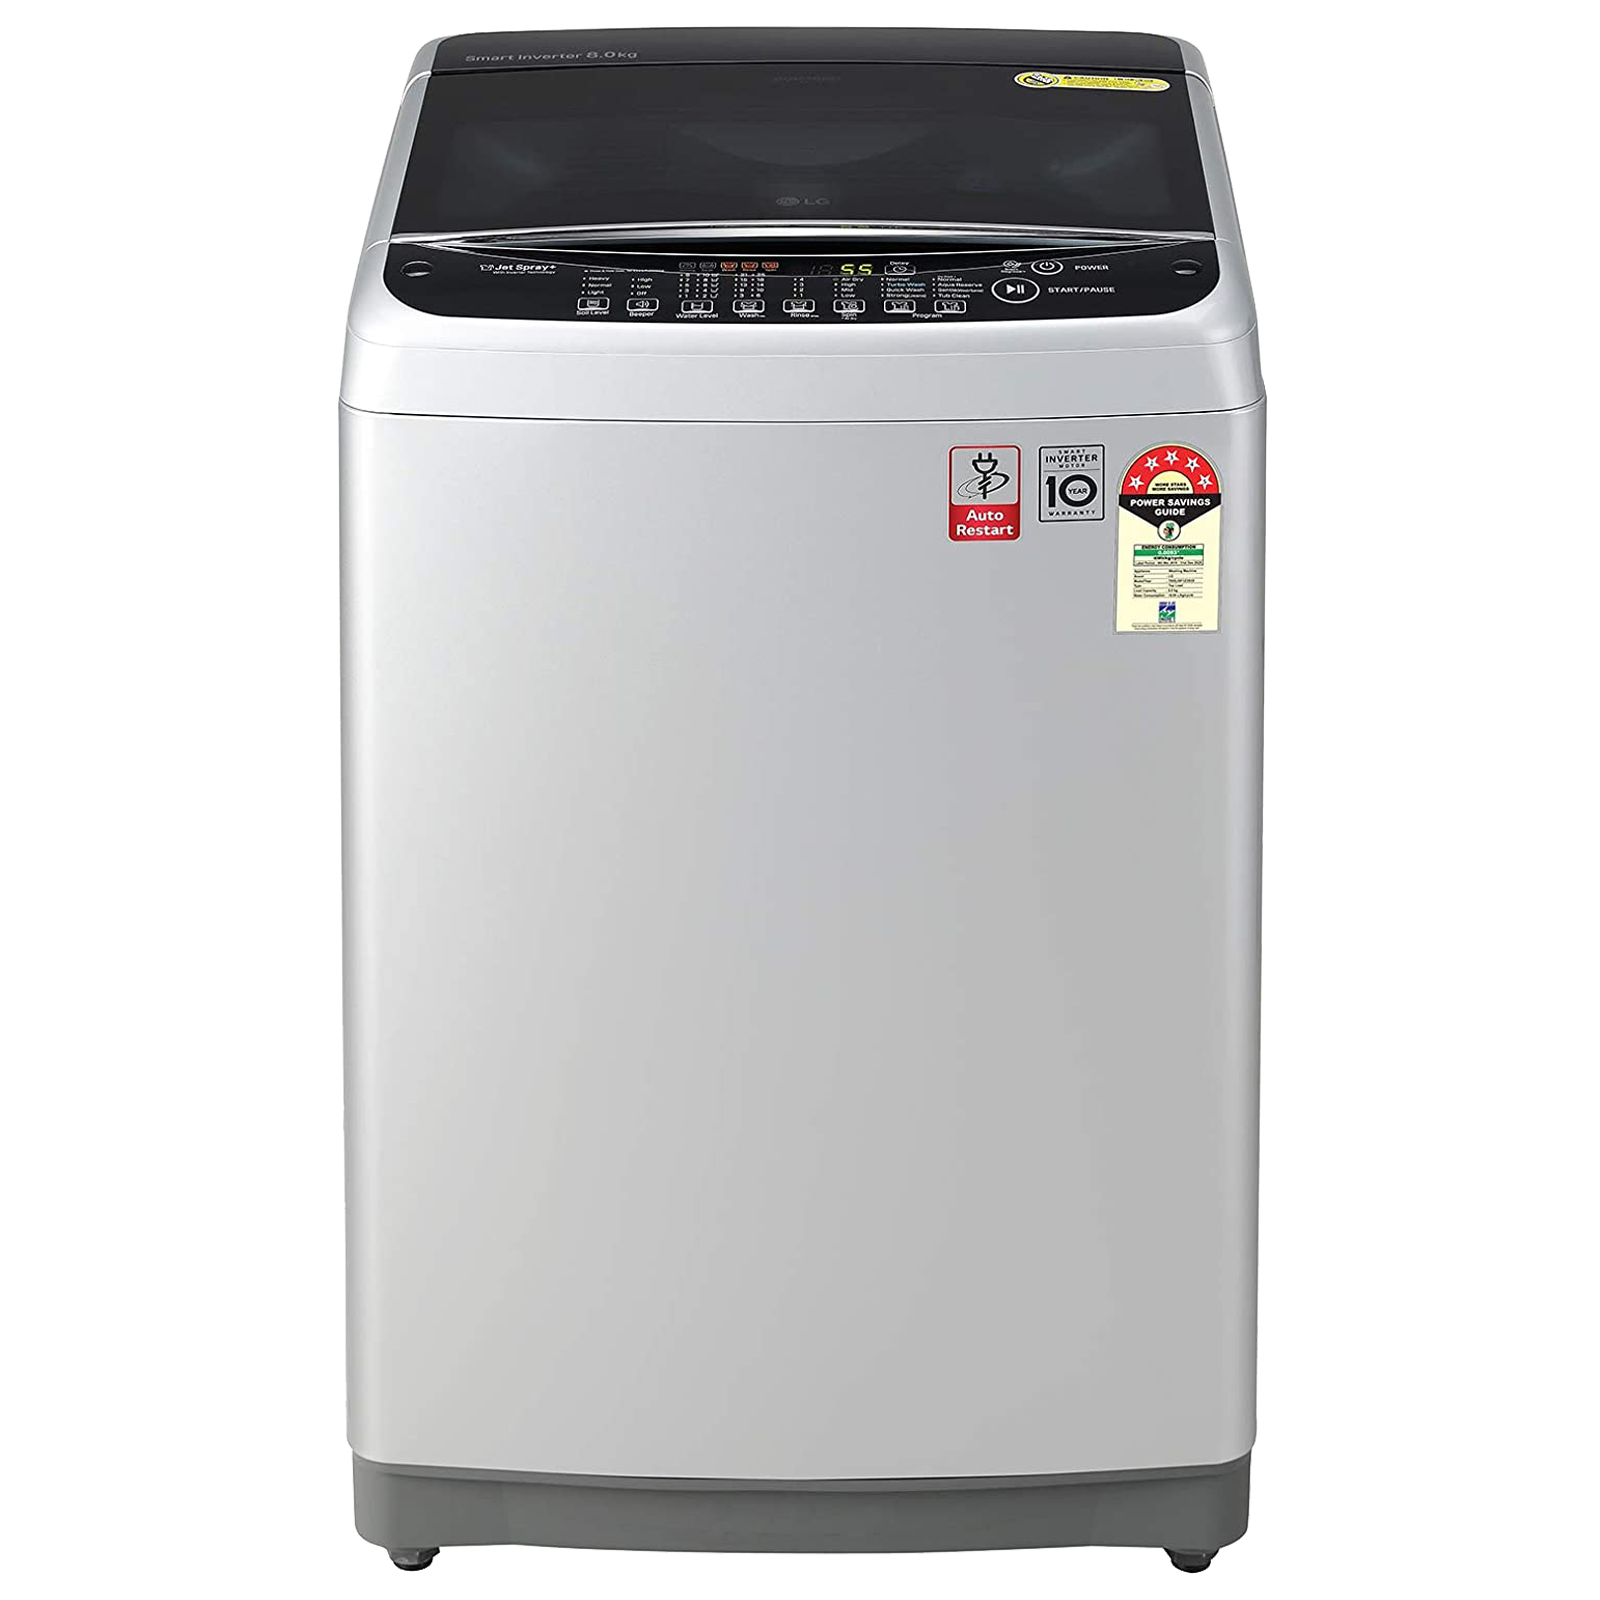 LG 8 kg 5 Star Fully Automatic Top Load Washing Machine (Smart Diagnosis, T80SJSF1Z.ASFQEIL, Middle Free Silver)_1